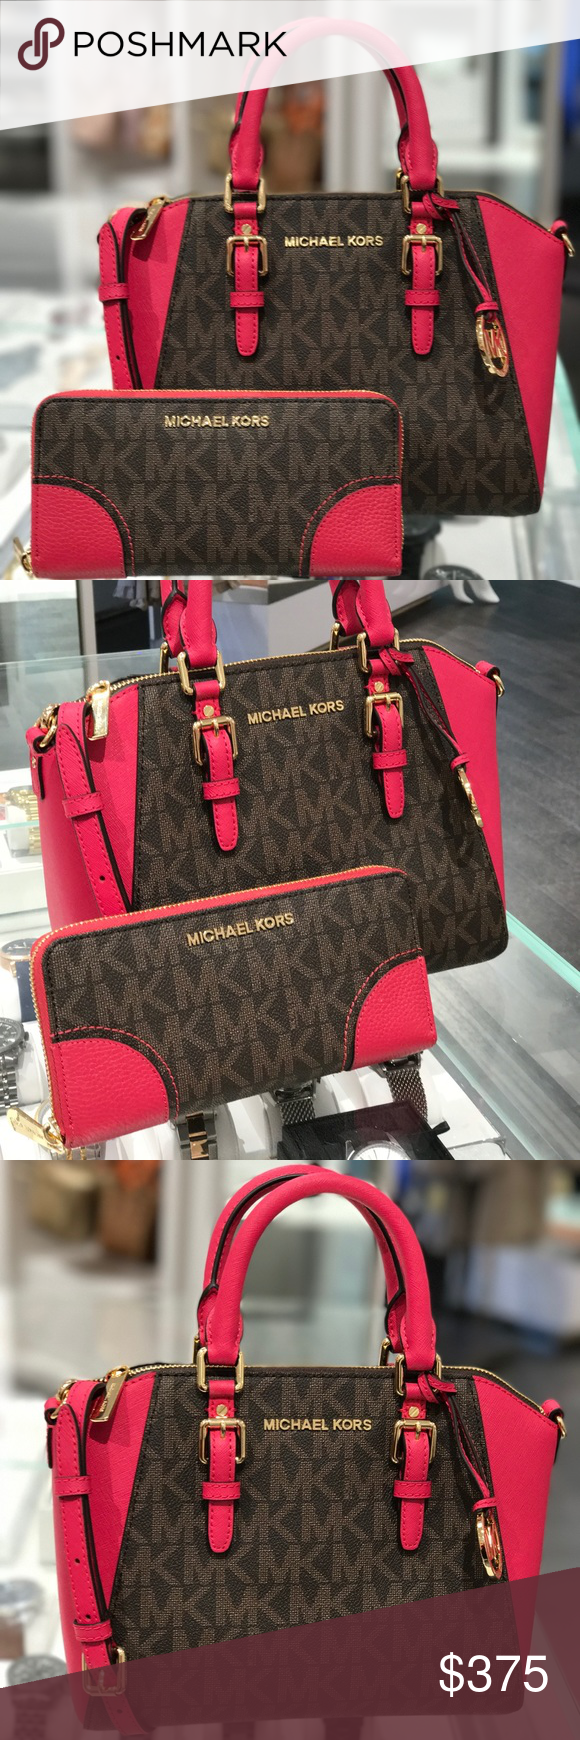 2358dd2b15edde Spotted while shopping on Poshmark: Michael Kors medium Ciara bag  withmatching wallet! #poshmark #fashion #shopping #style #Michael Kors  #Handbags